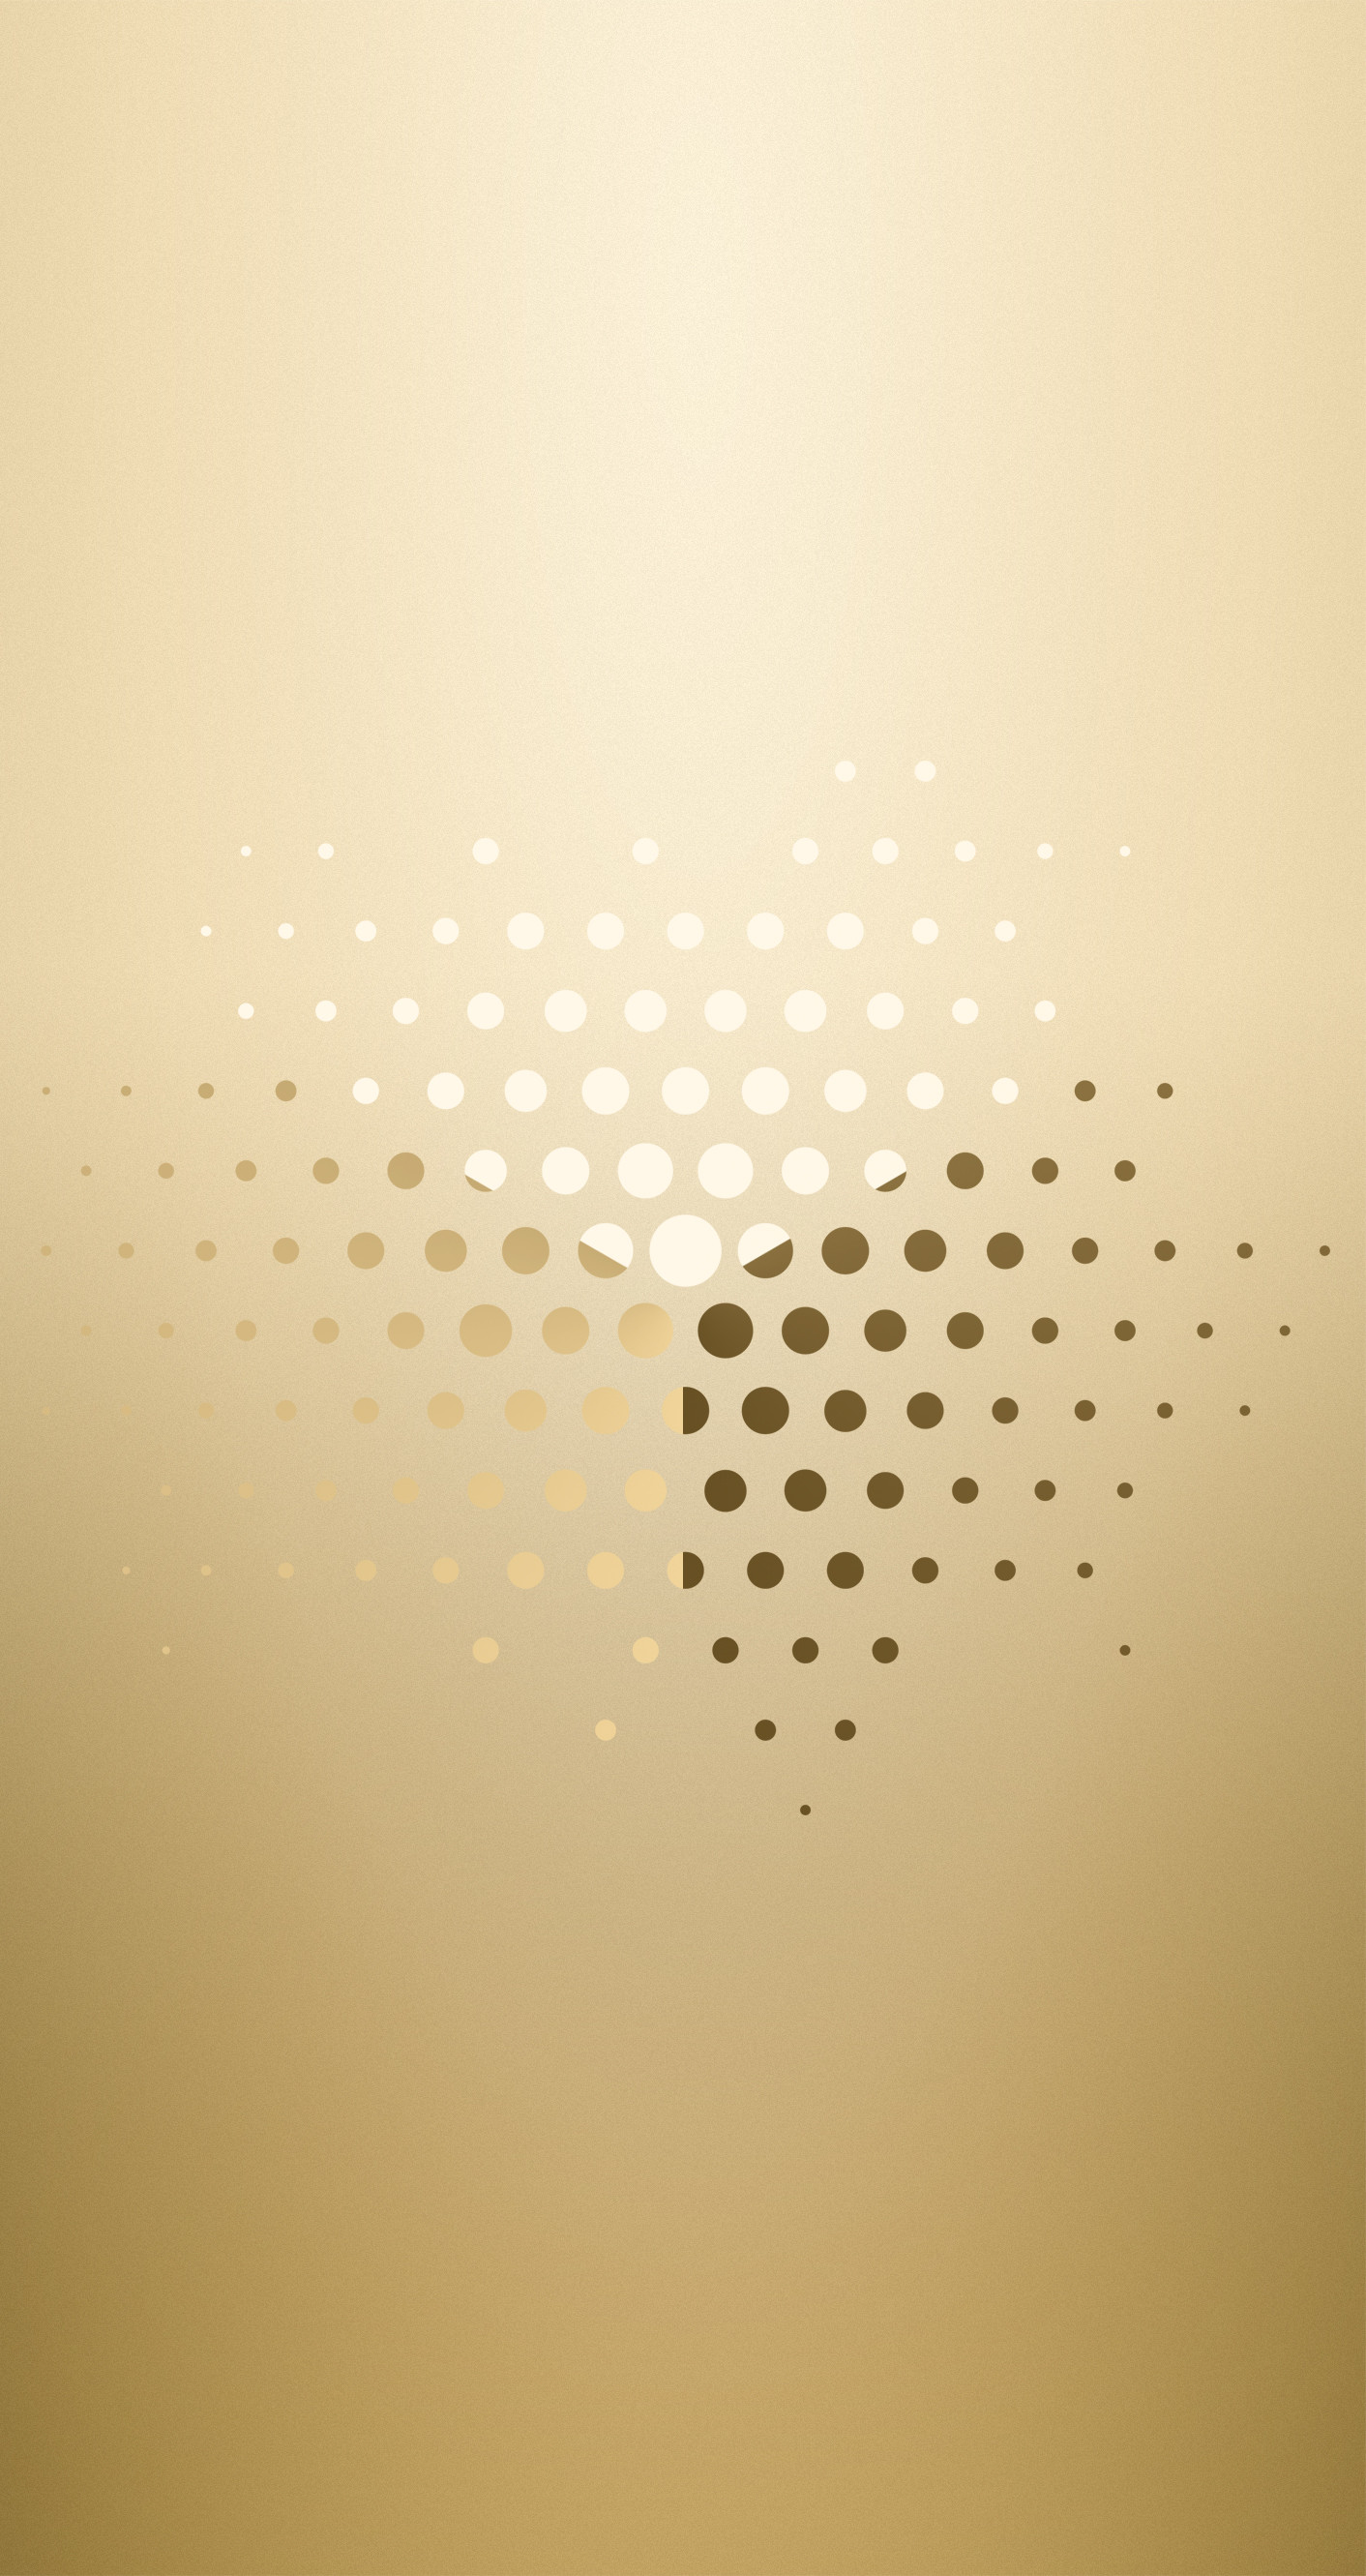 Gold: Exclusive Apple Watch-inspired wallpapers by Jason Zigrino / Find  more Classy #